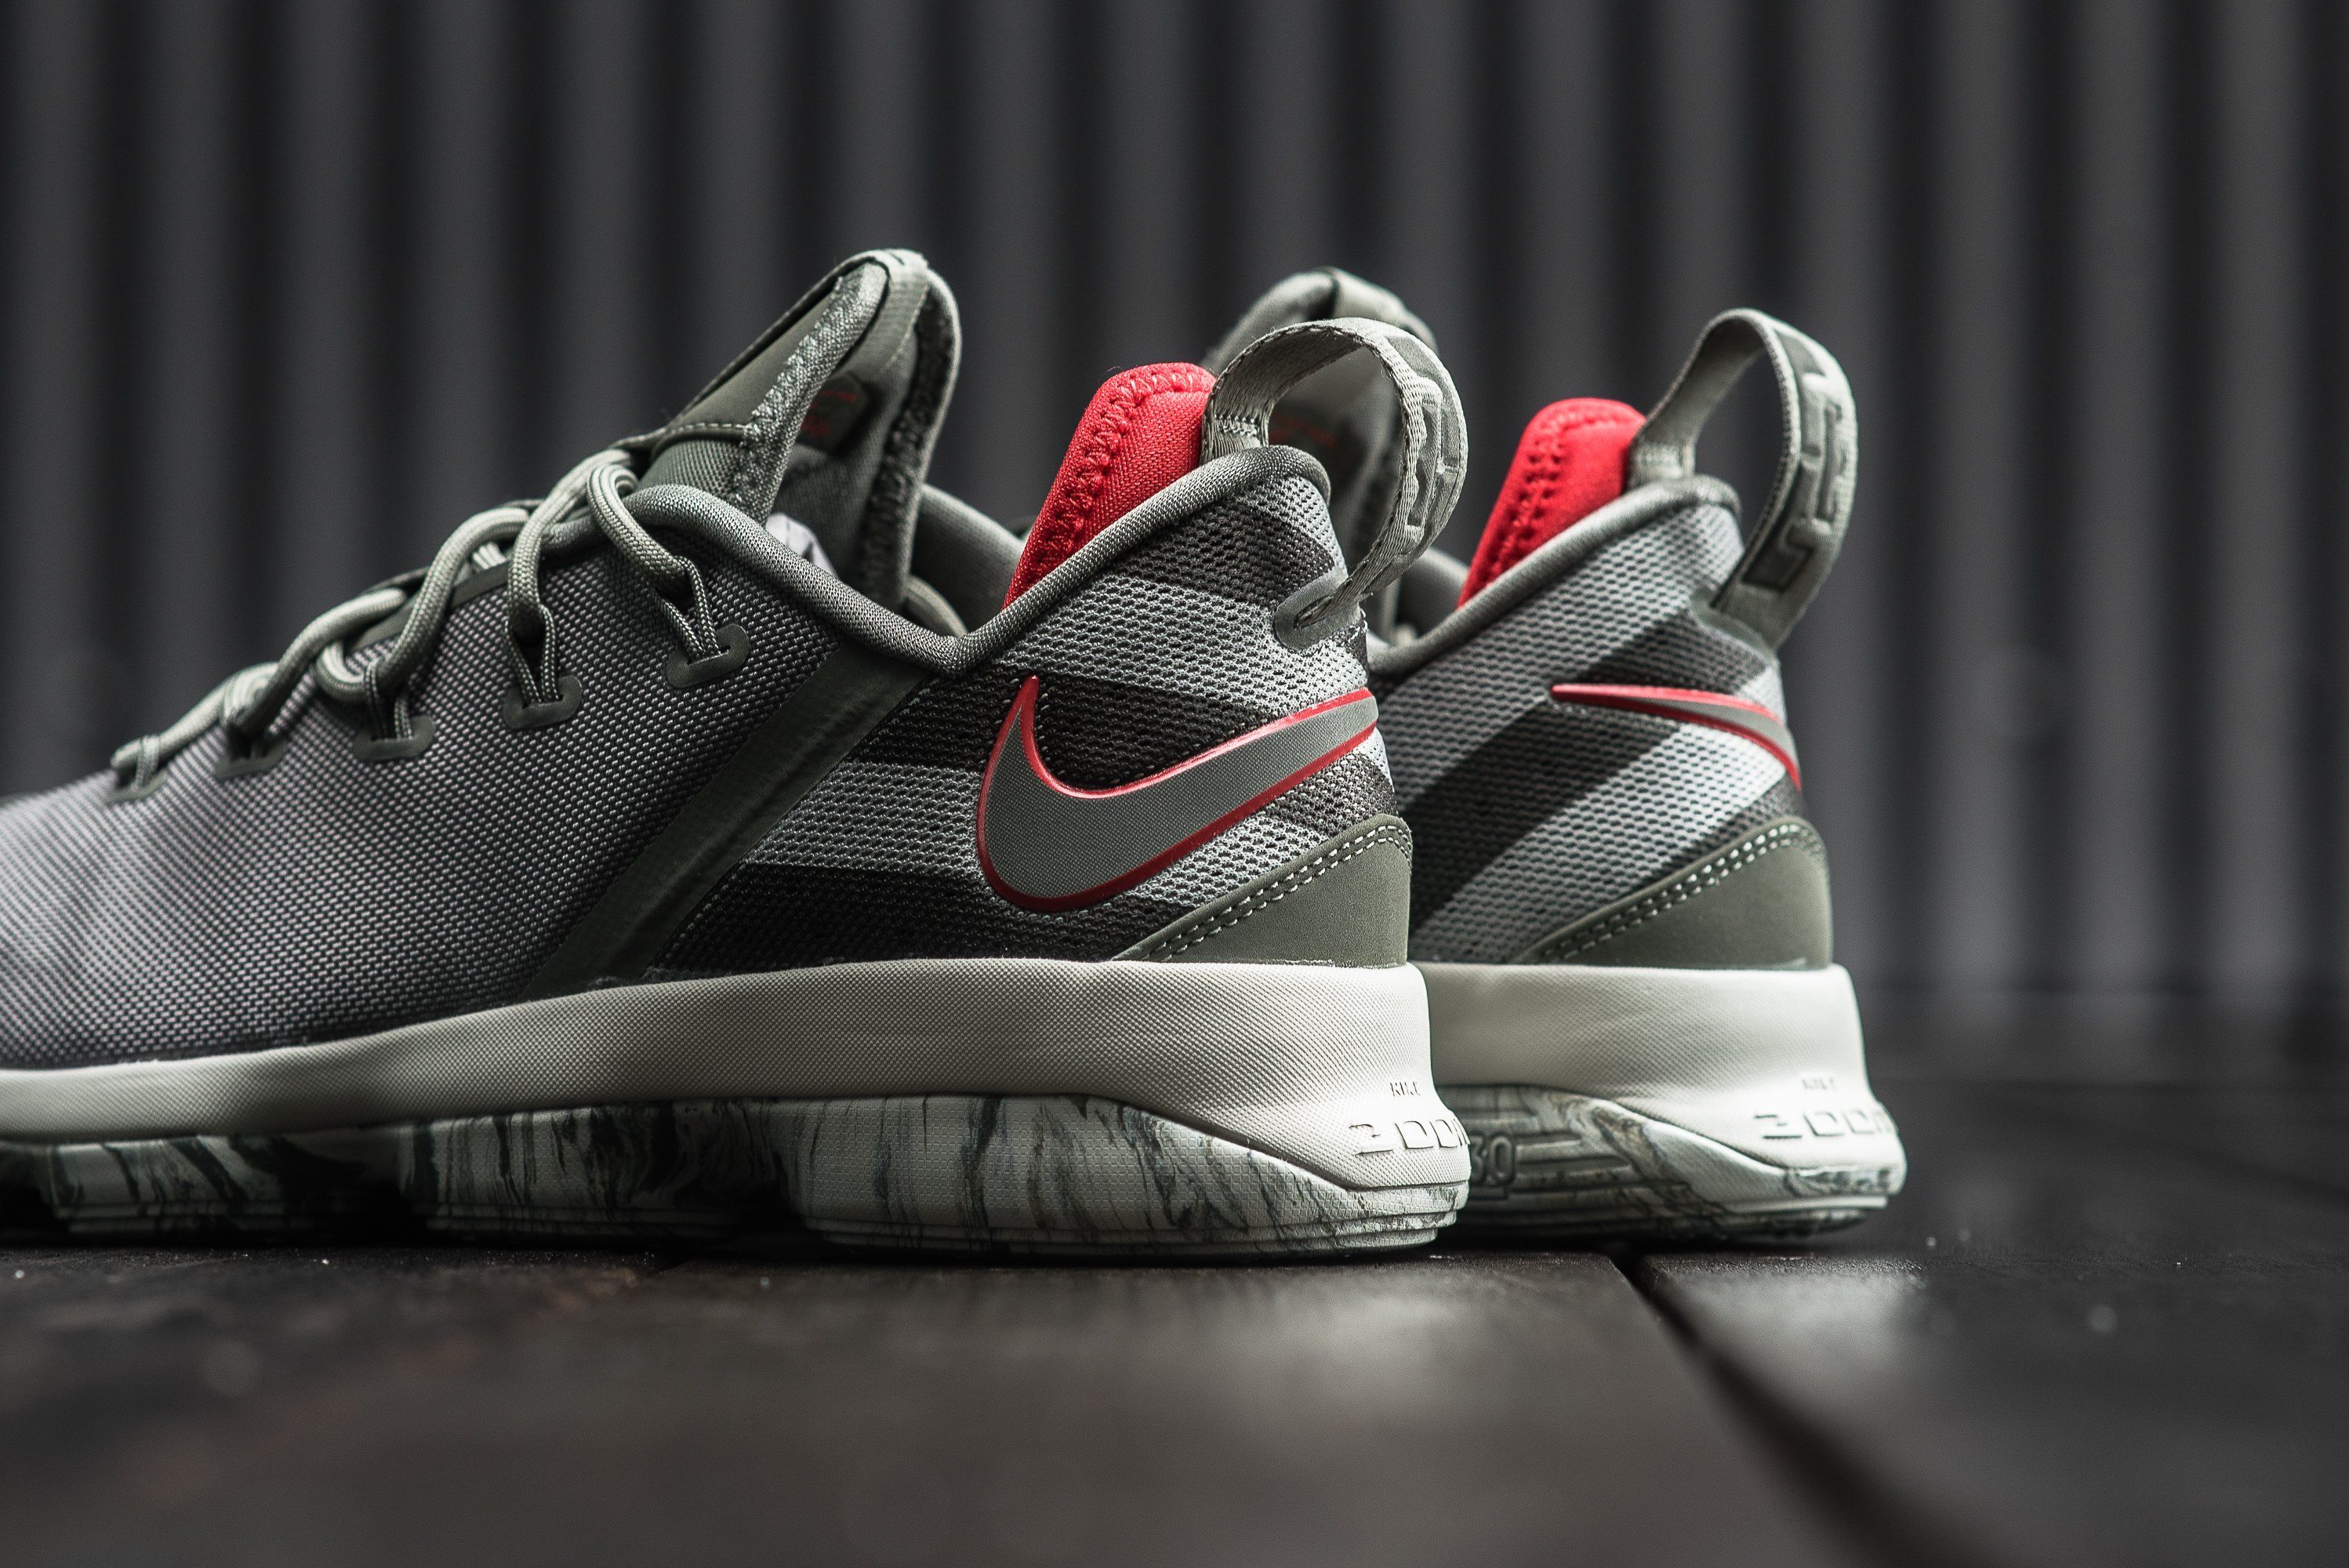 e27909eacaf8d A Detailed Look At The Nike LeBron 14 Low Dark Stucco